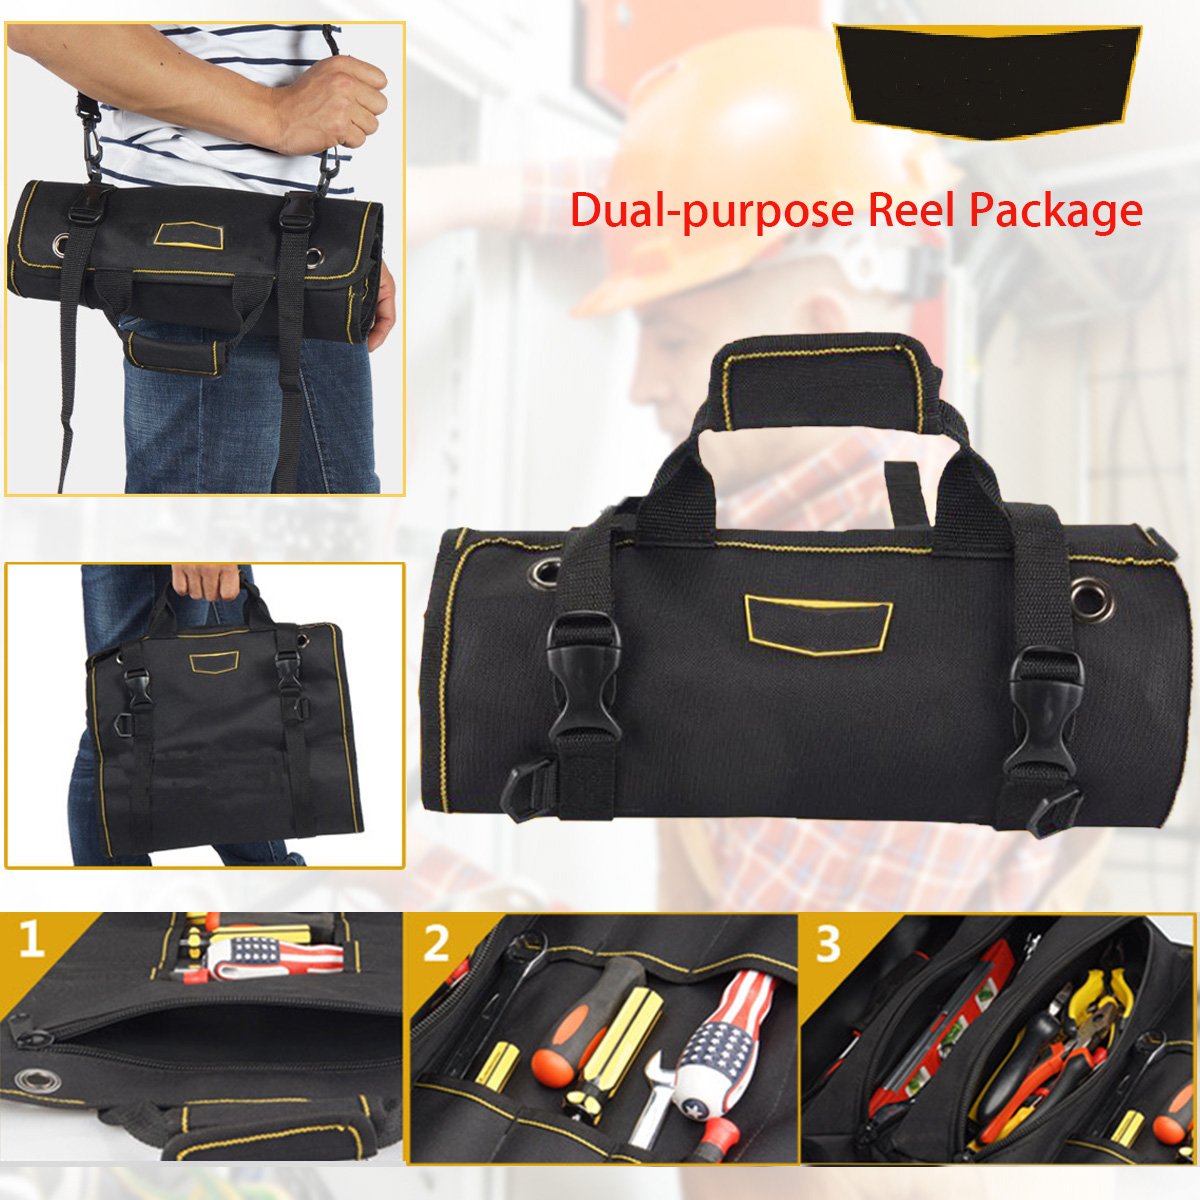 Multifunction Electrician Tool Pouch Reels Storage Reel Tool Bag Electrician Tools Kit Roll Bag Kit Spanners Oxford Cloth Bag 1pcs 14 inch appliances electrical repair bag after sales tool bag oxford cloth double canvas thickening tool kit